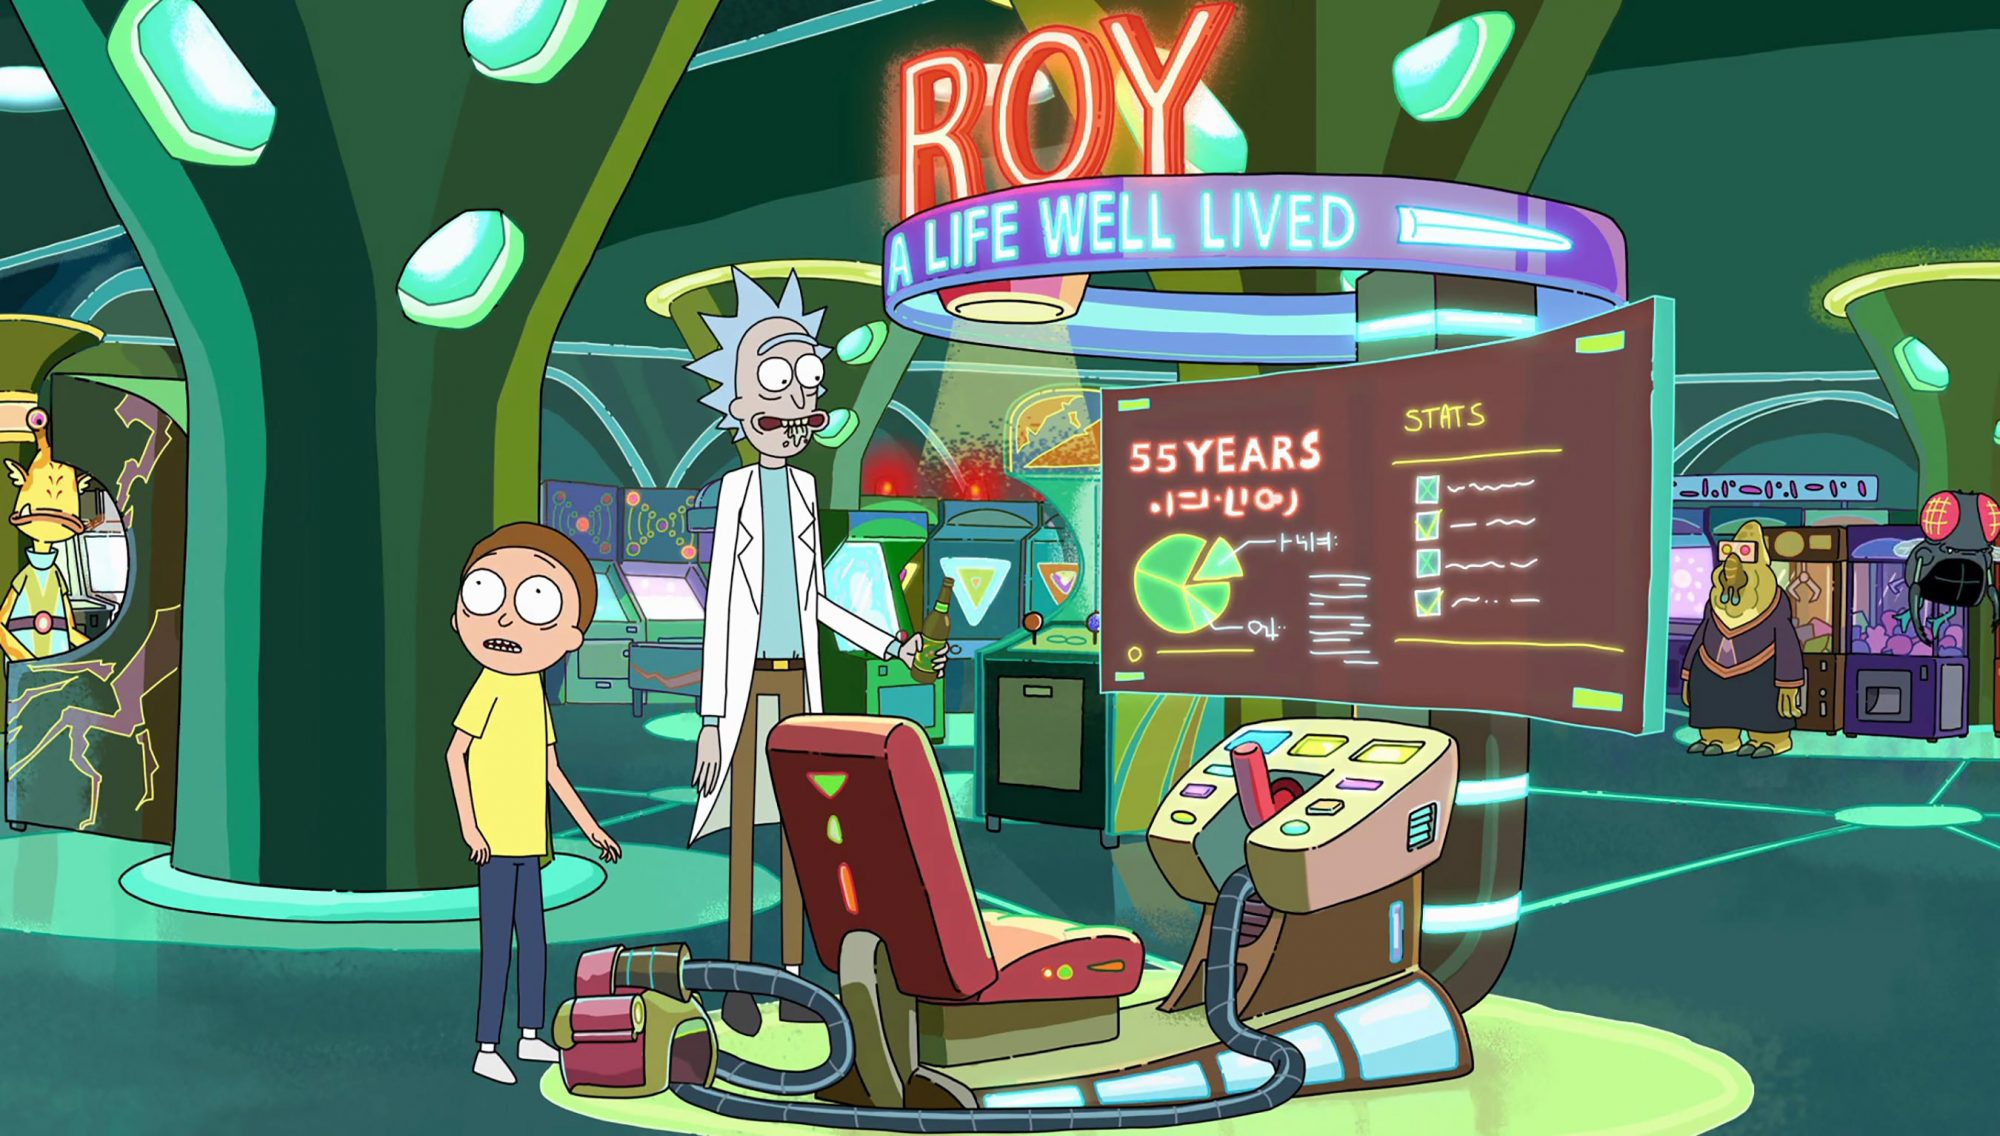 Ricky and Morty - Roy: A Life Well Lived (Season 2, Episode 2)